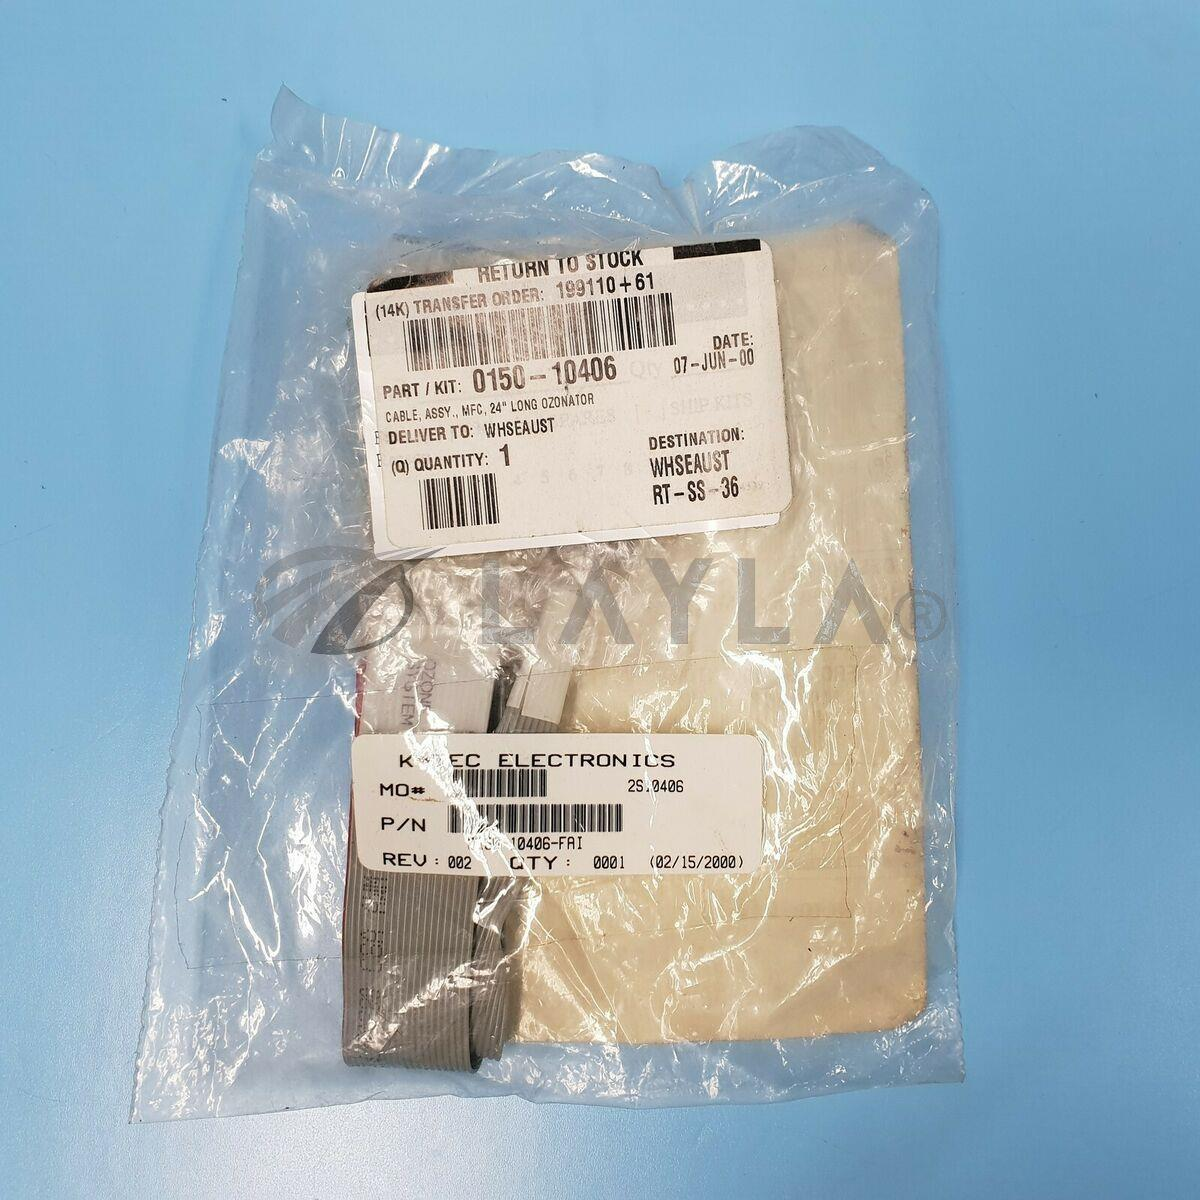 0150-10406/-/142-0502// AMAT APPLIED 0150-10406 CABLE, ASSY., MFC, 24 LONG OZ NEW/AMAT Applied Materials/-_01